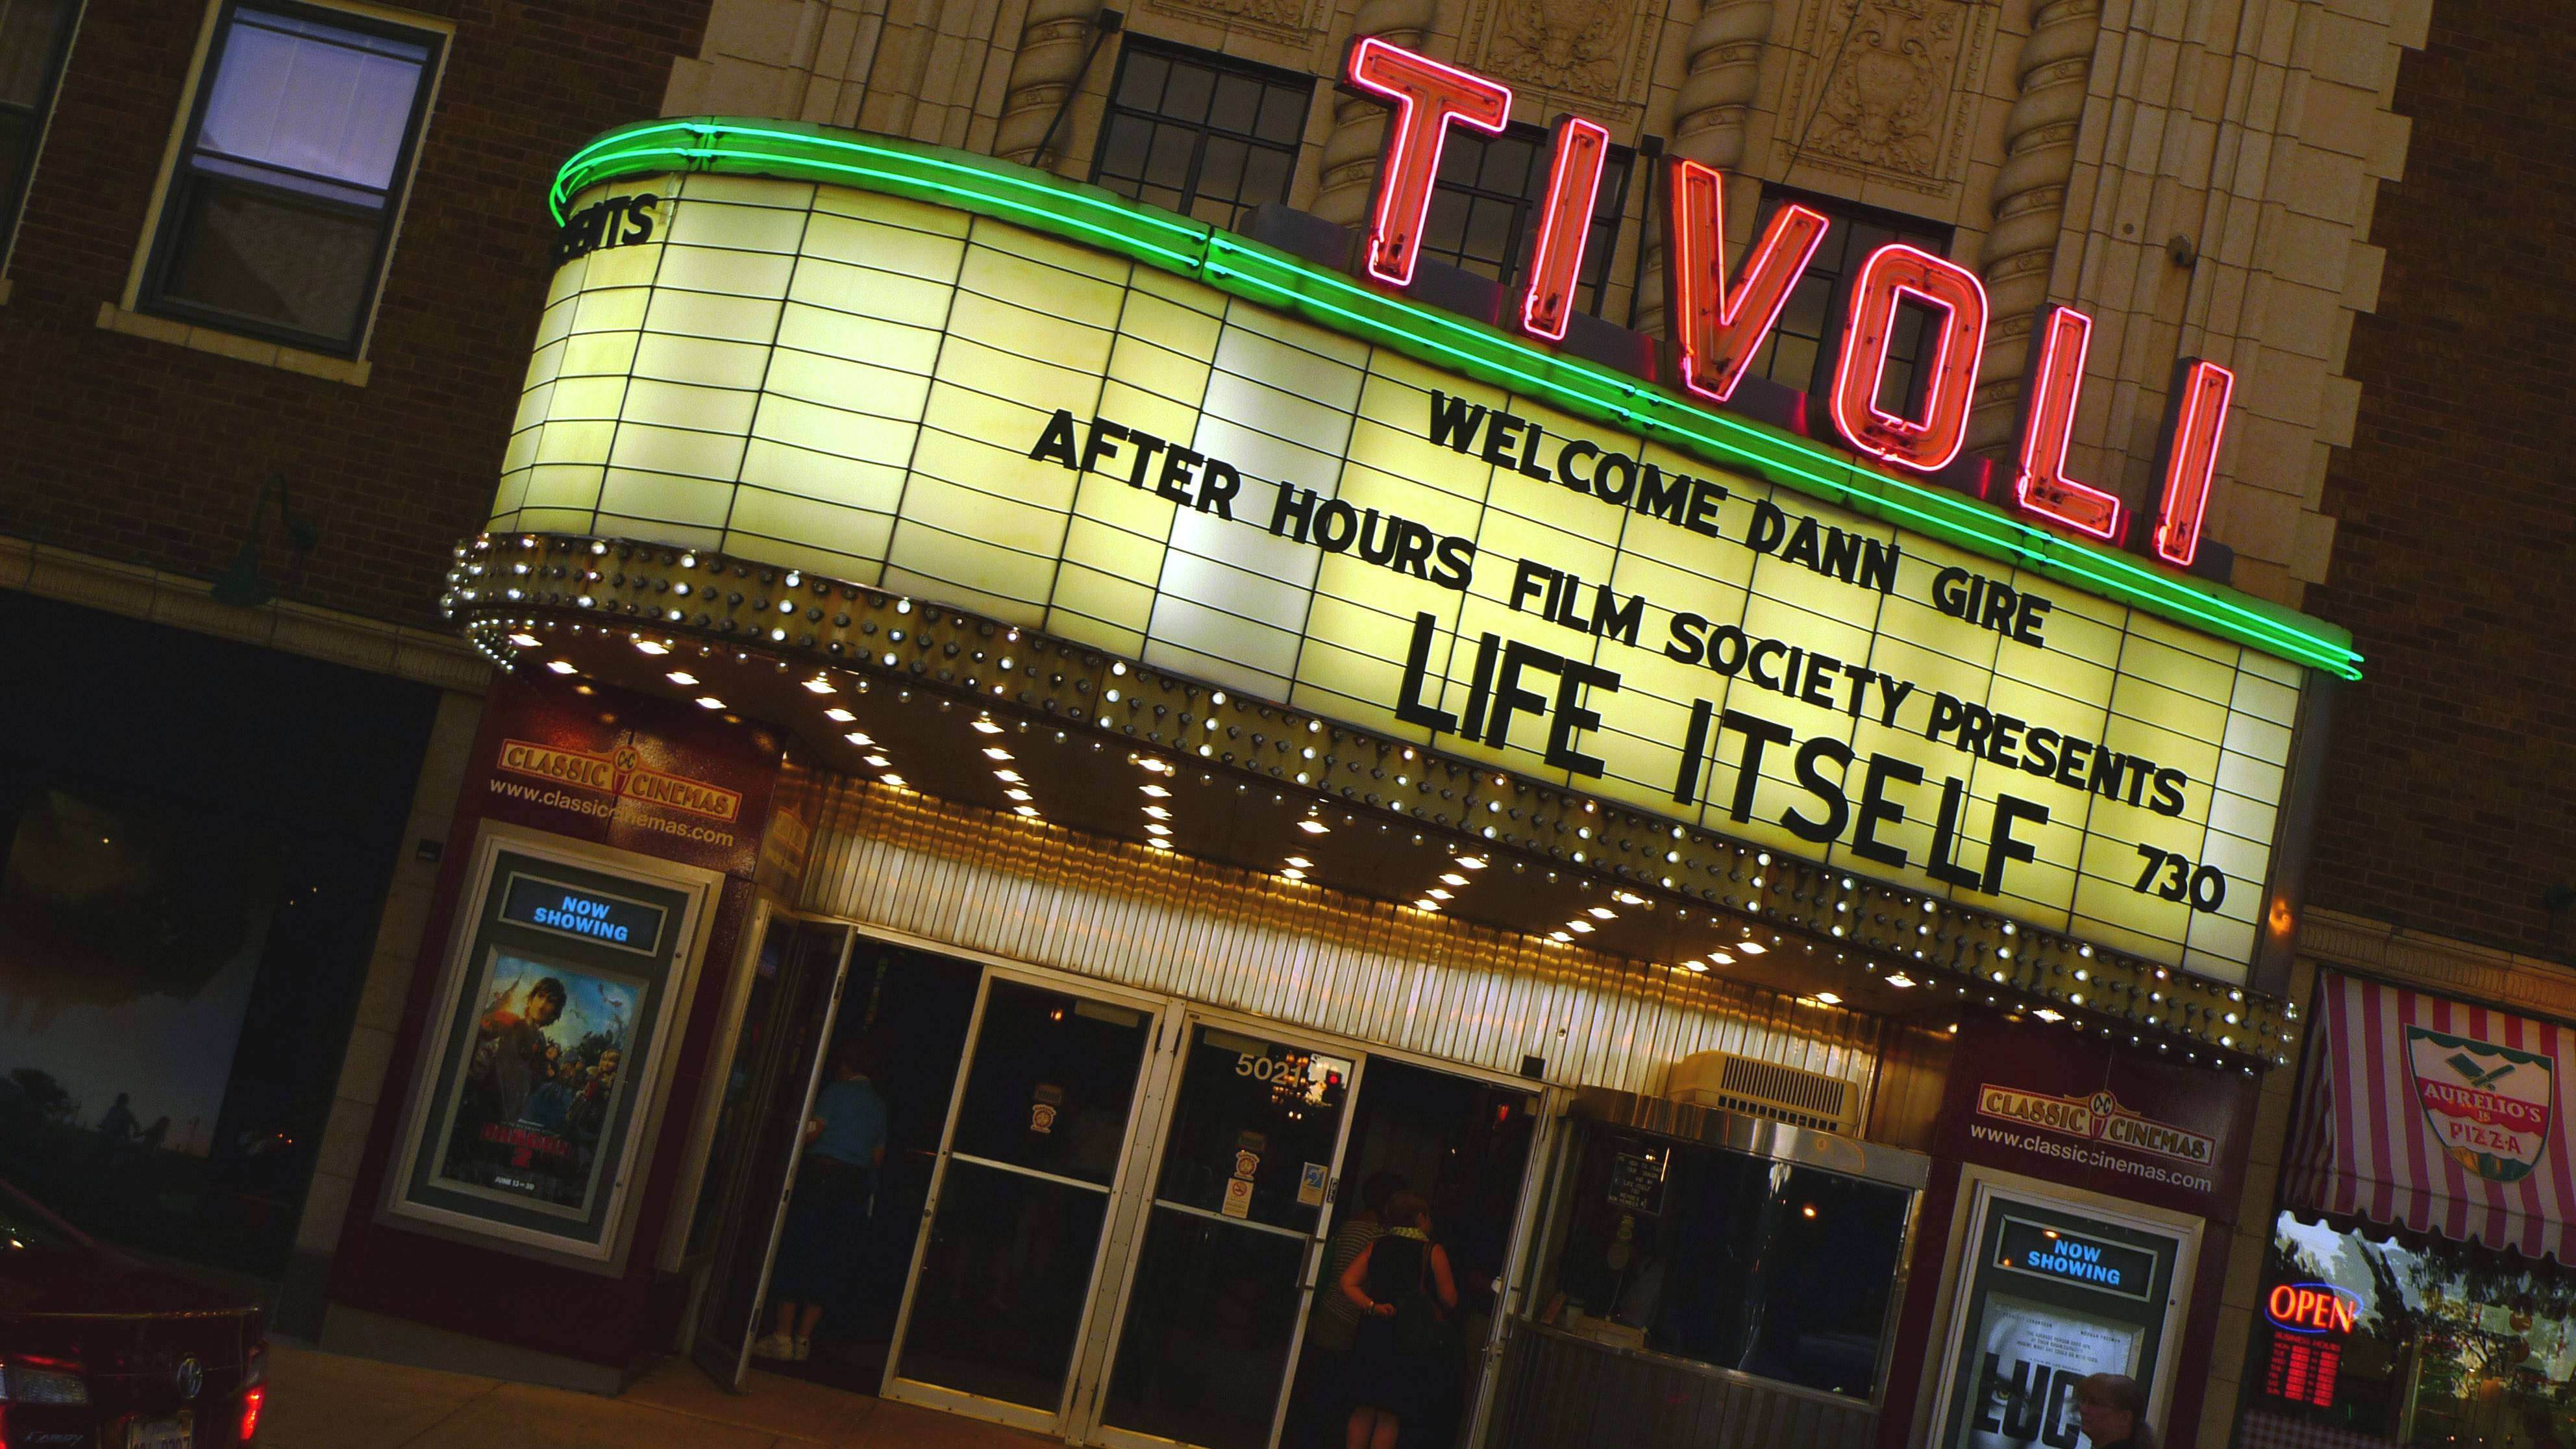 The Tivoli Theater was built in Downers Grove in 1938.